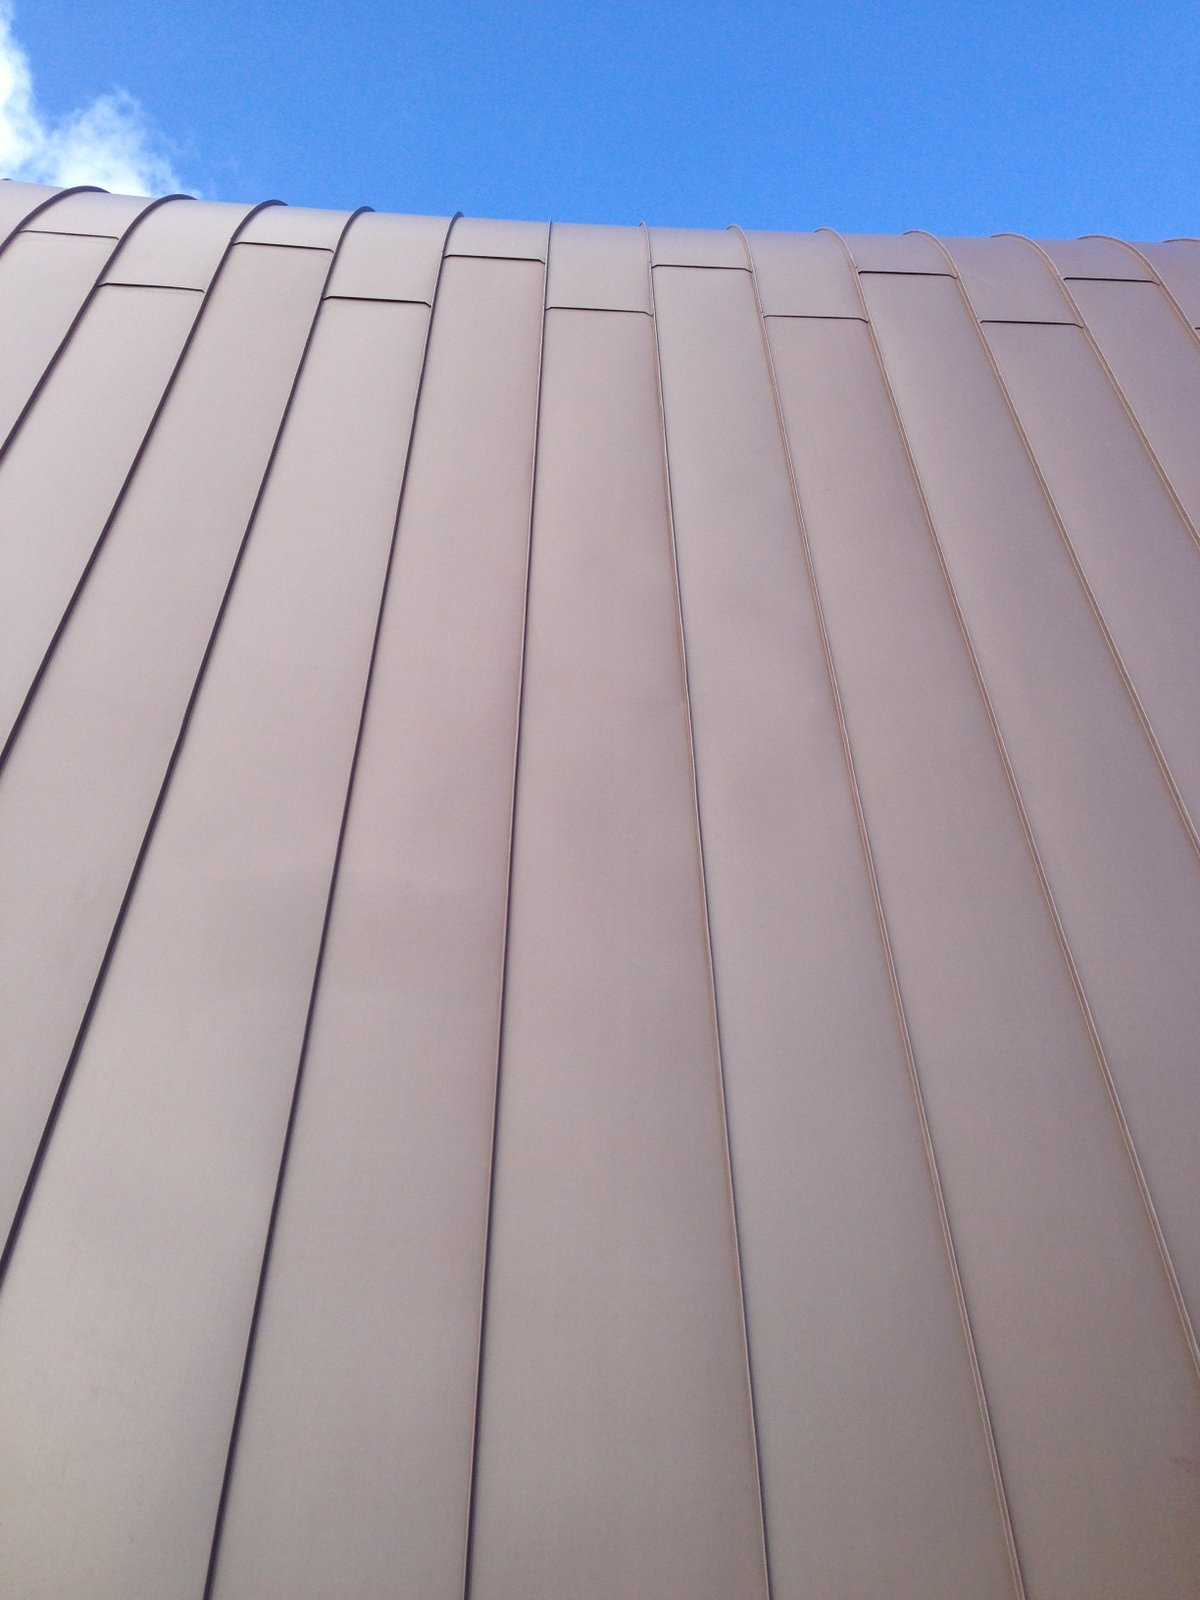 Aspendale Residence - Standing Seam Zinc Cladding - Staggered Joints